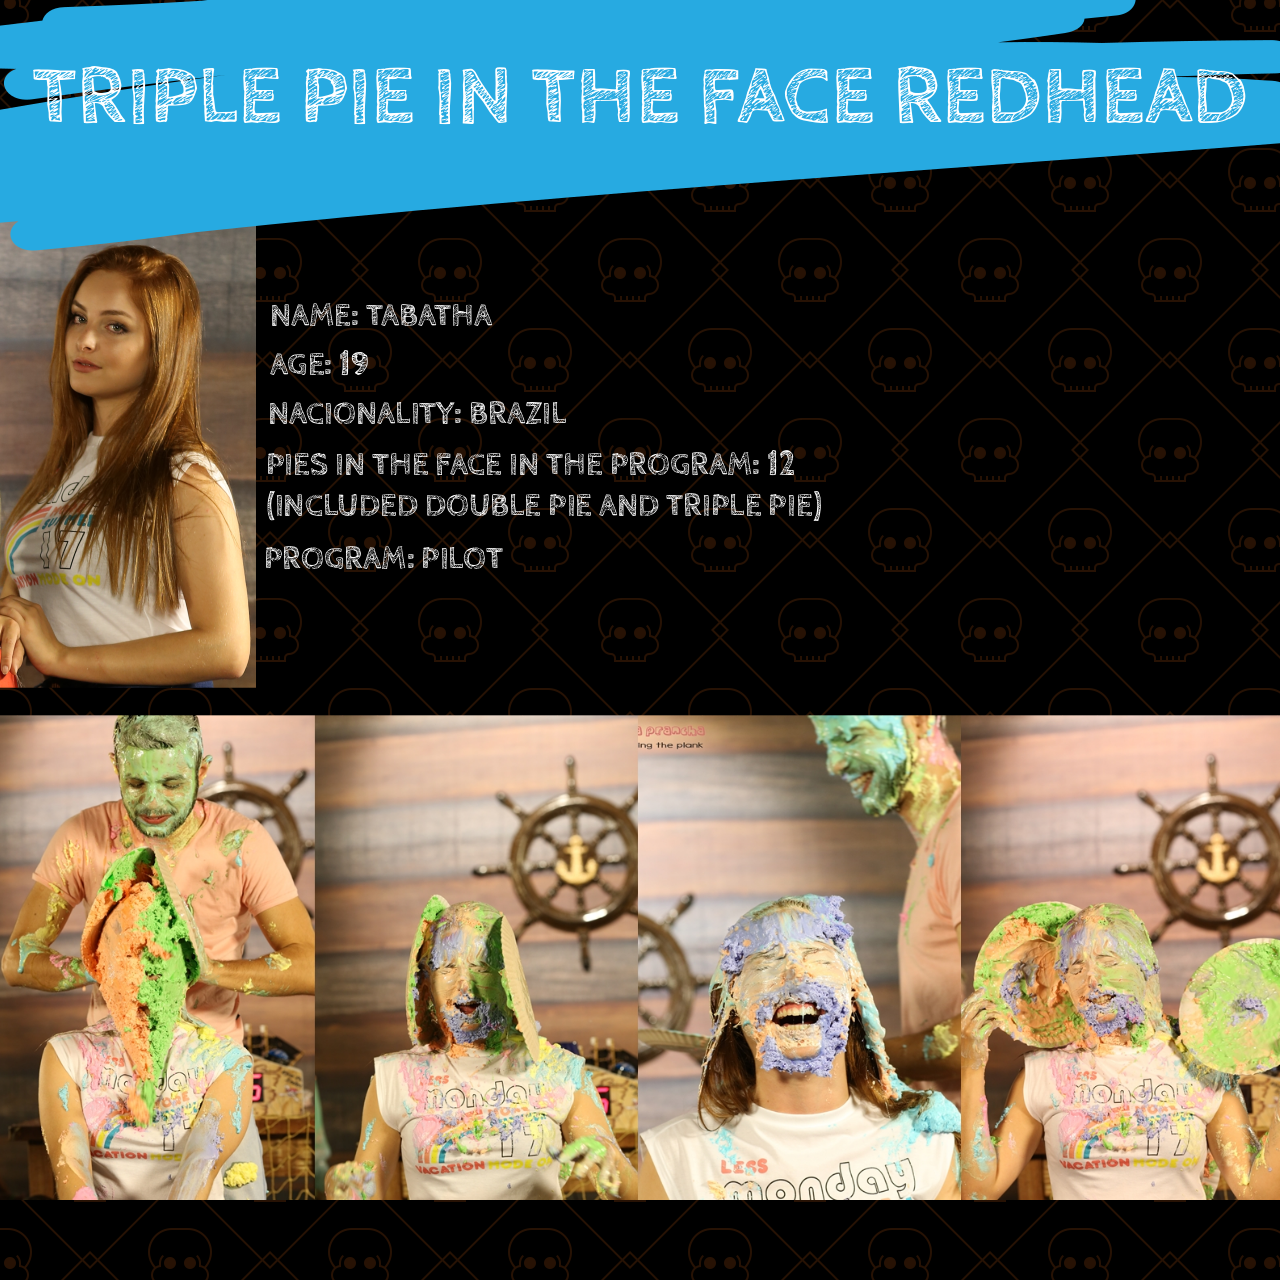 Pie in the face redhead